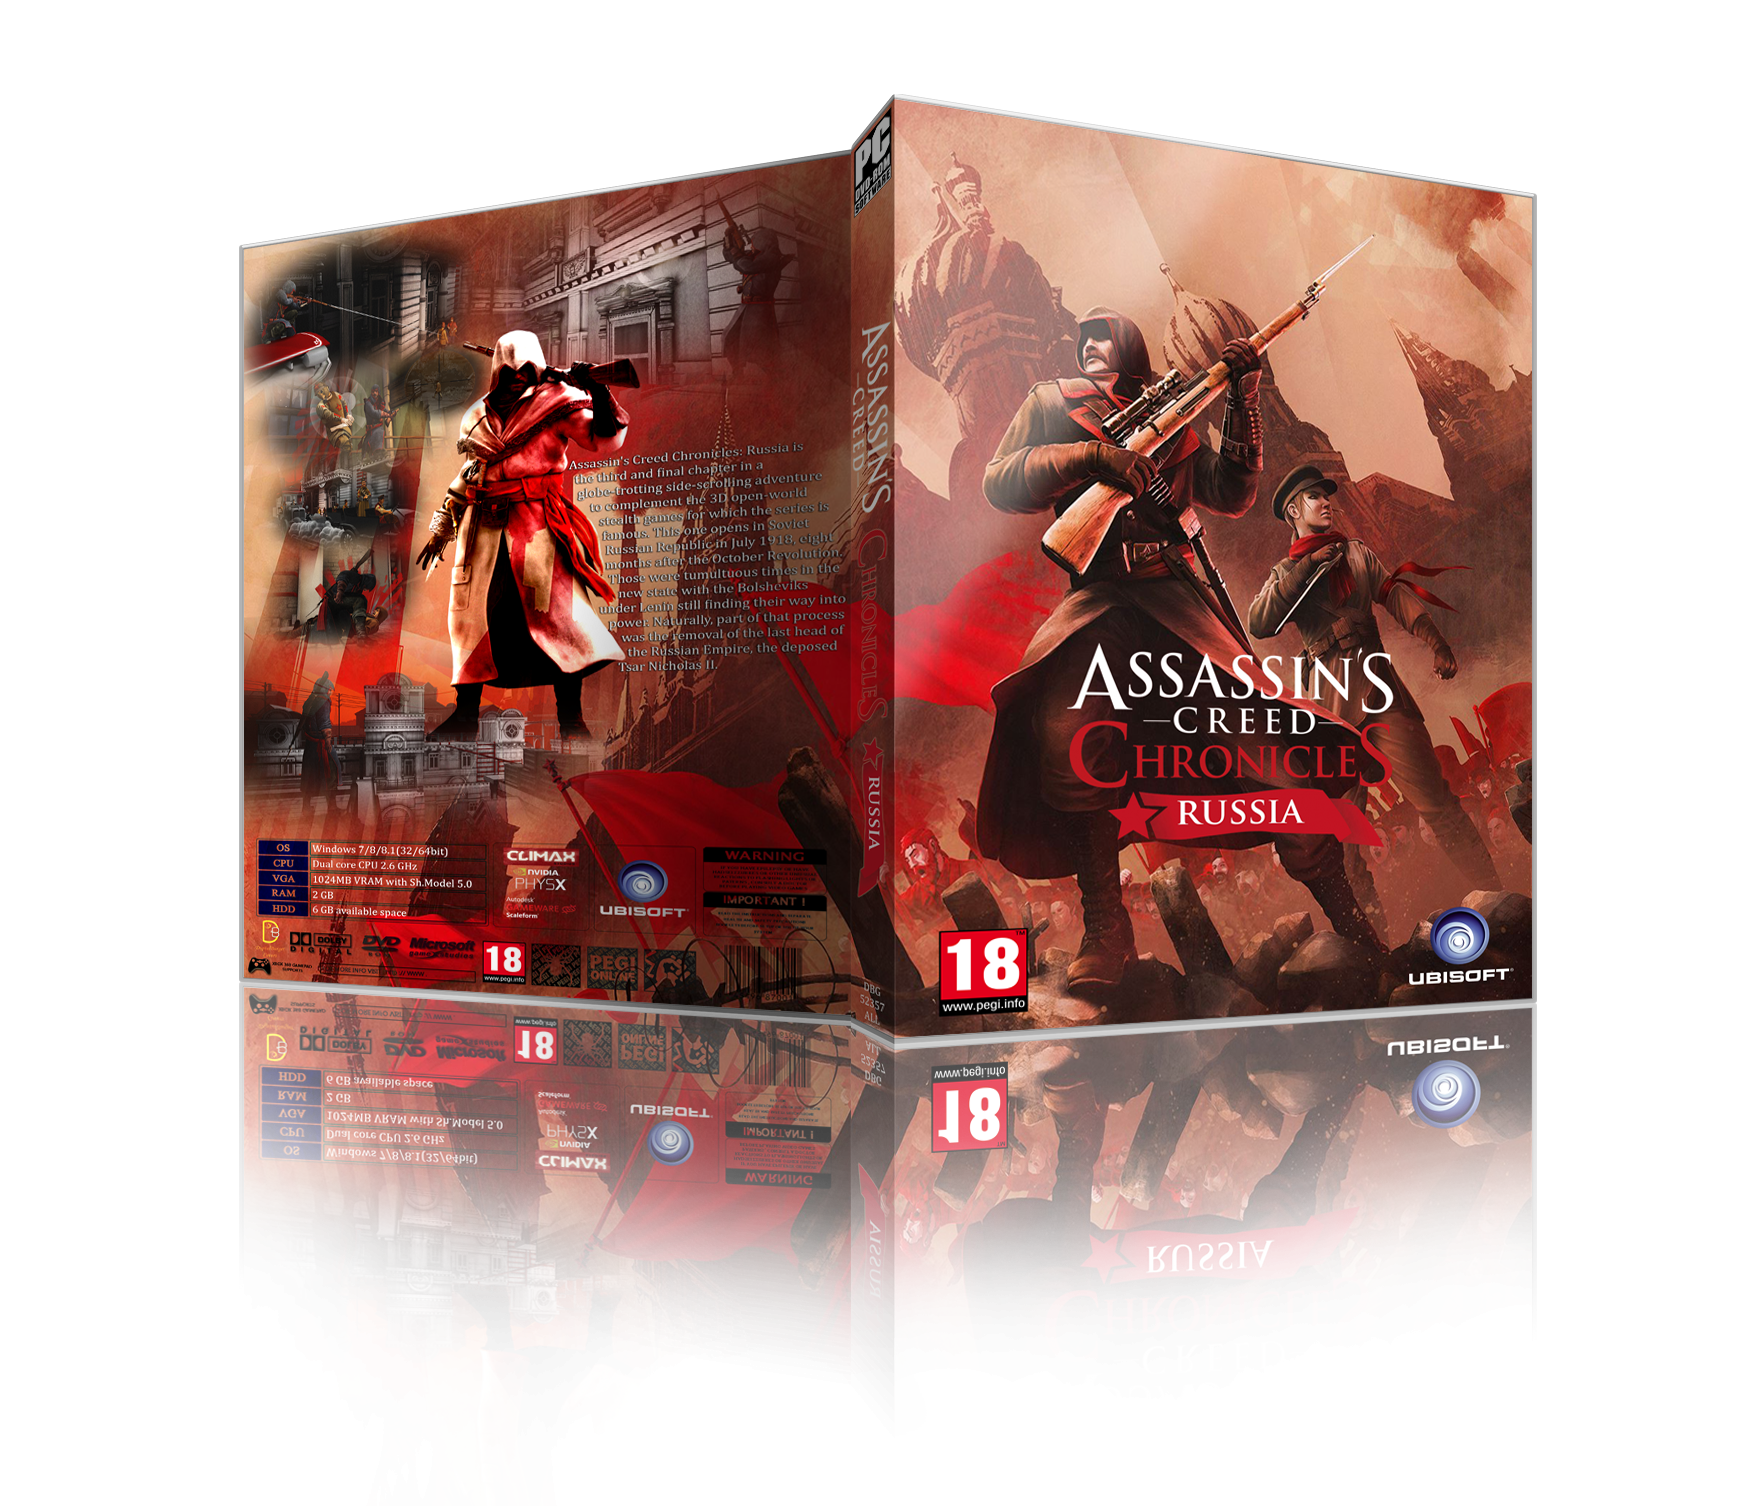 Assassin's Creed Chronicles Russia box cover